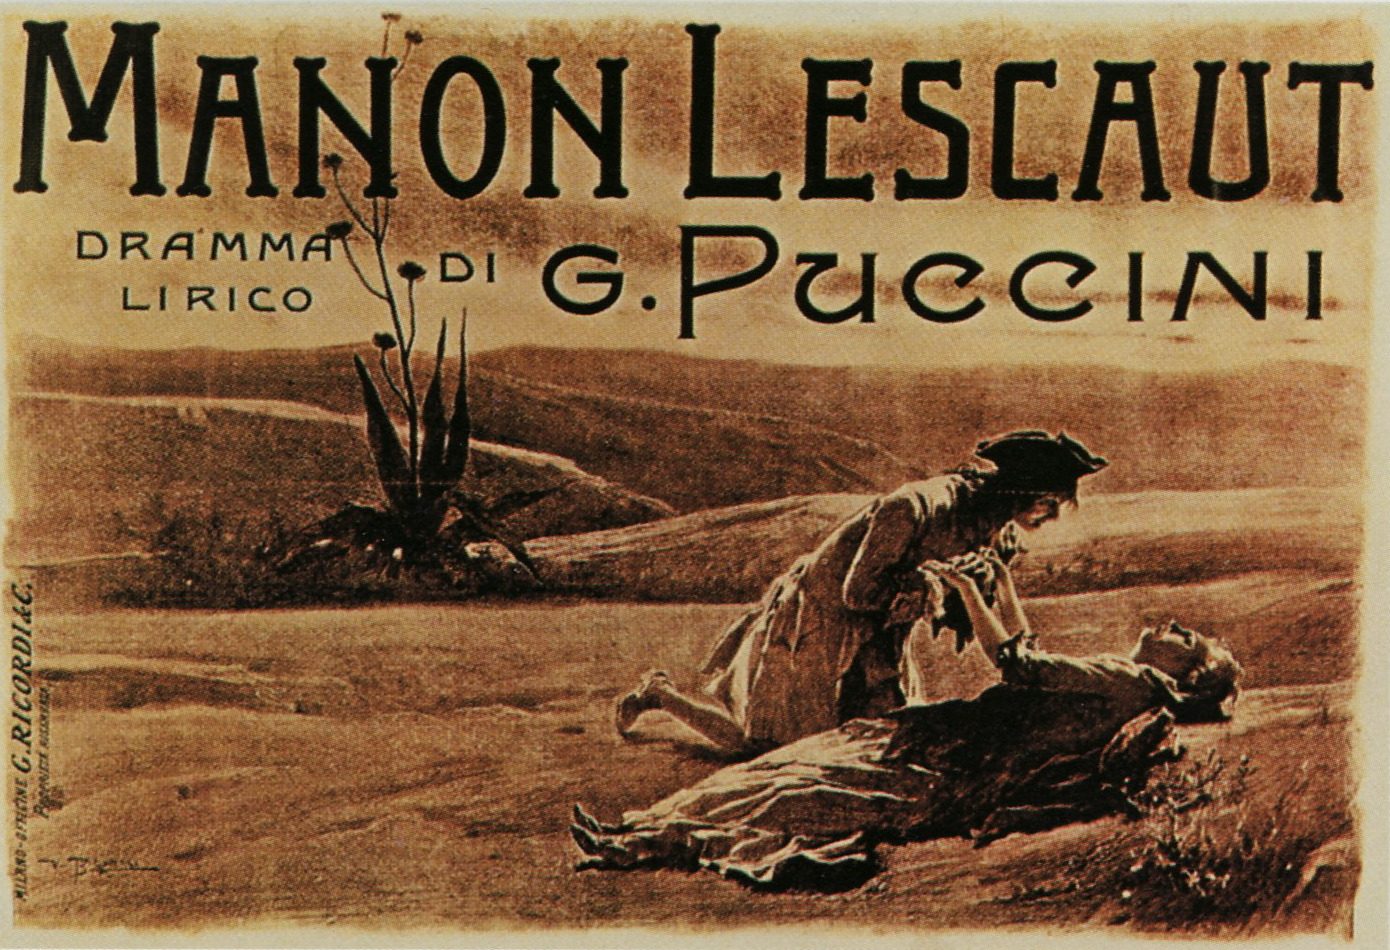 https://upload.wikimedia.org/wikipedia/commons/9/97/Locandina_Manon_Lescaut.jpg